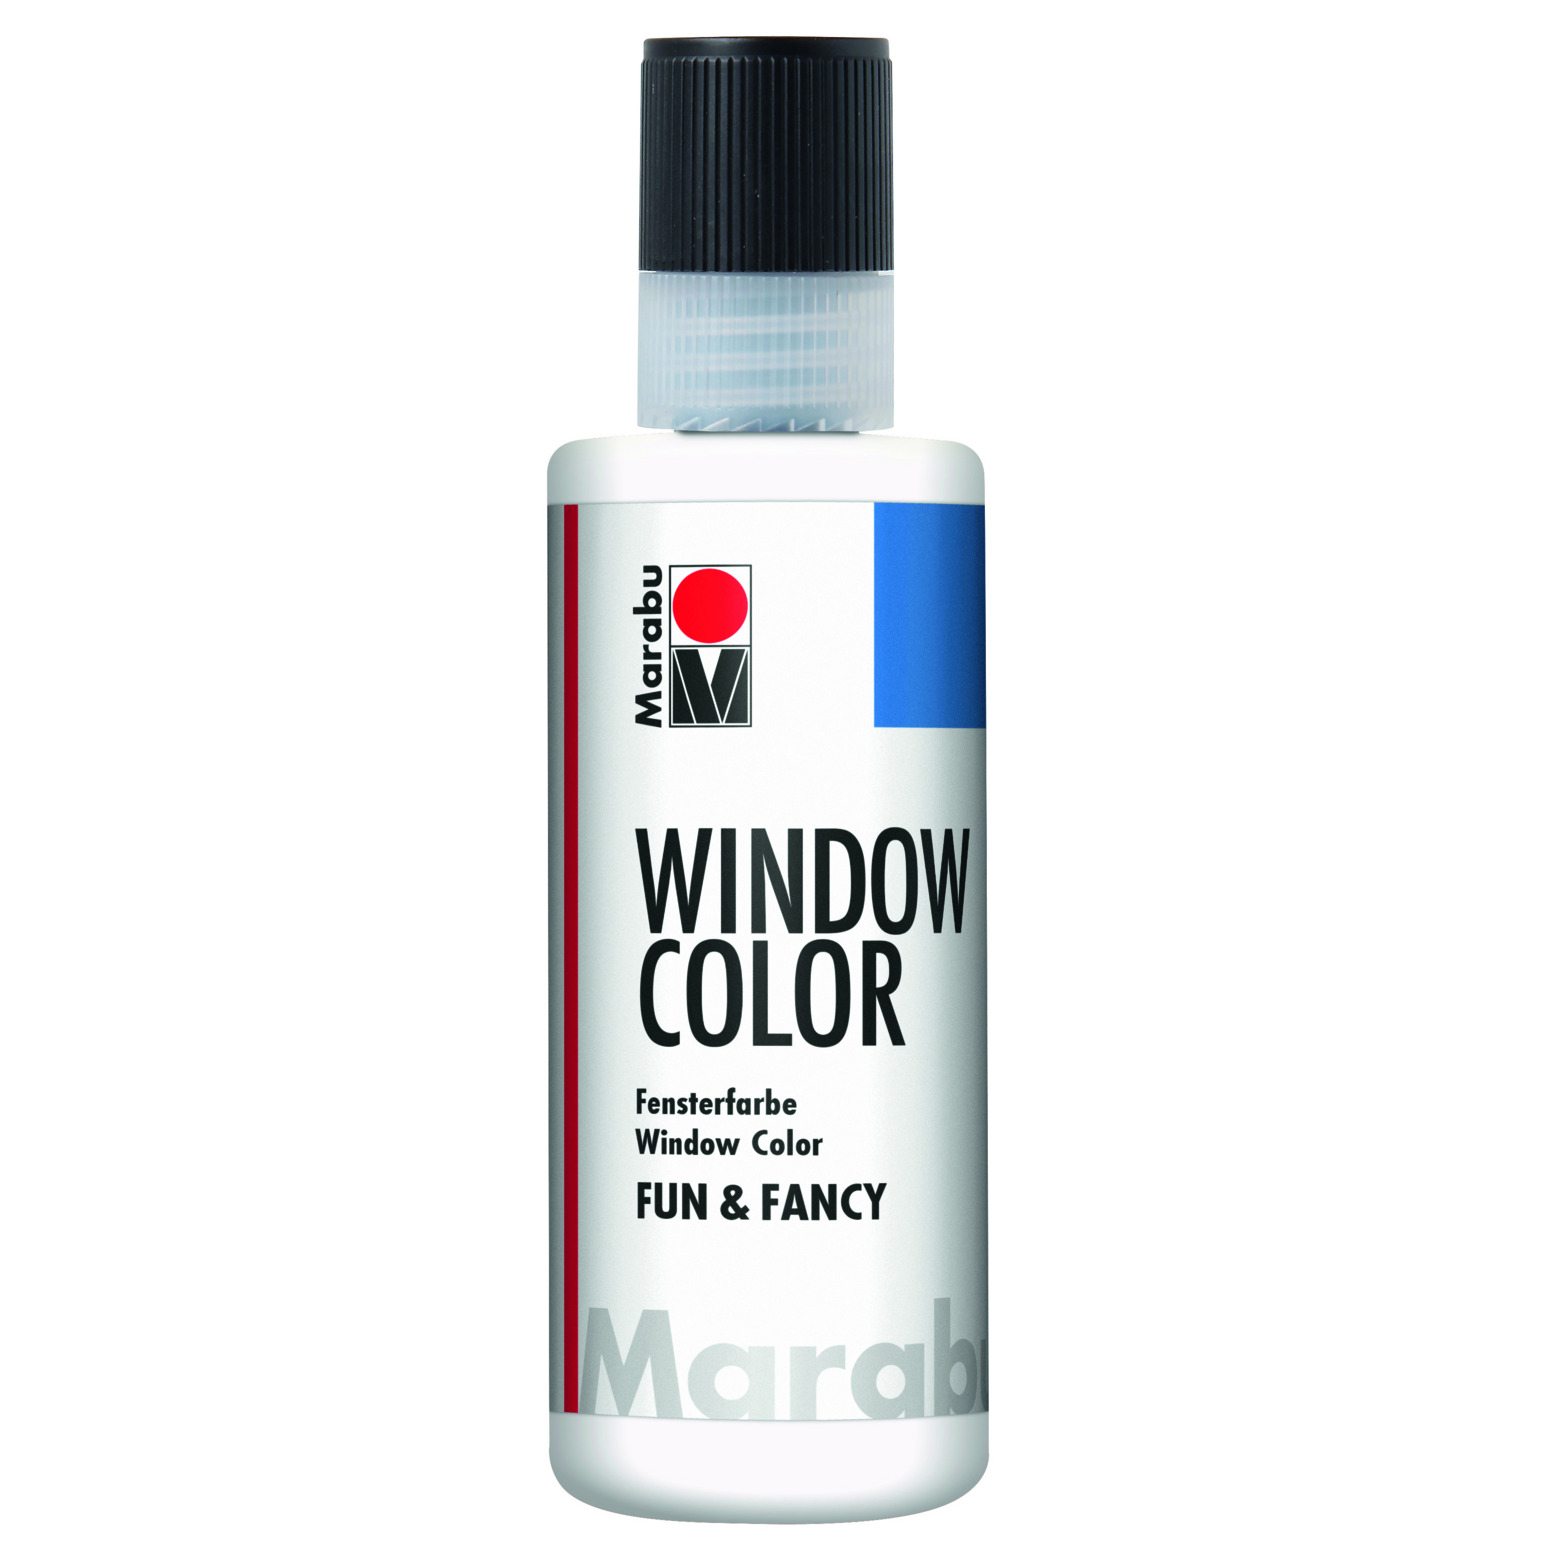 Marabu Window Color fun & fancy, Kristallklar 101, 80 ml